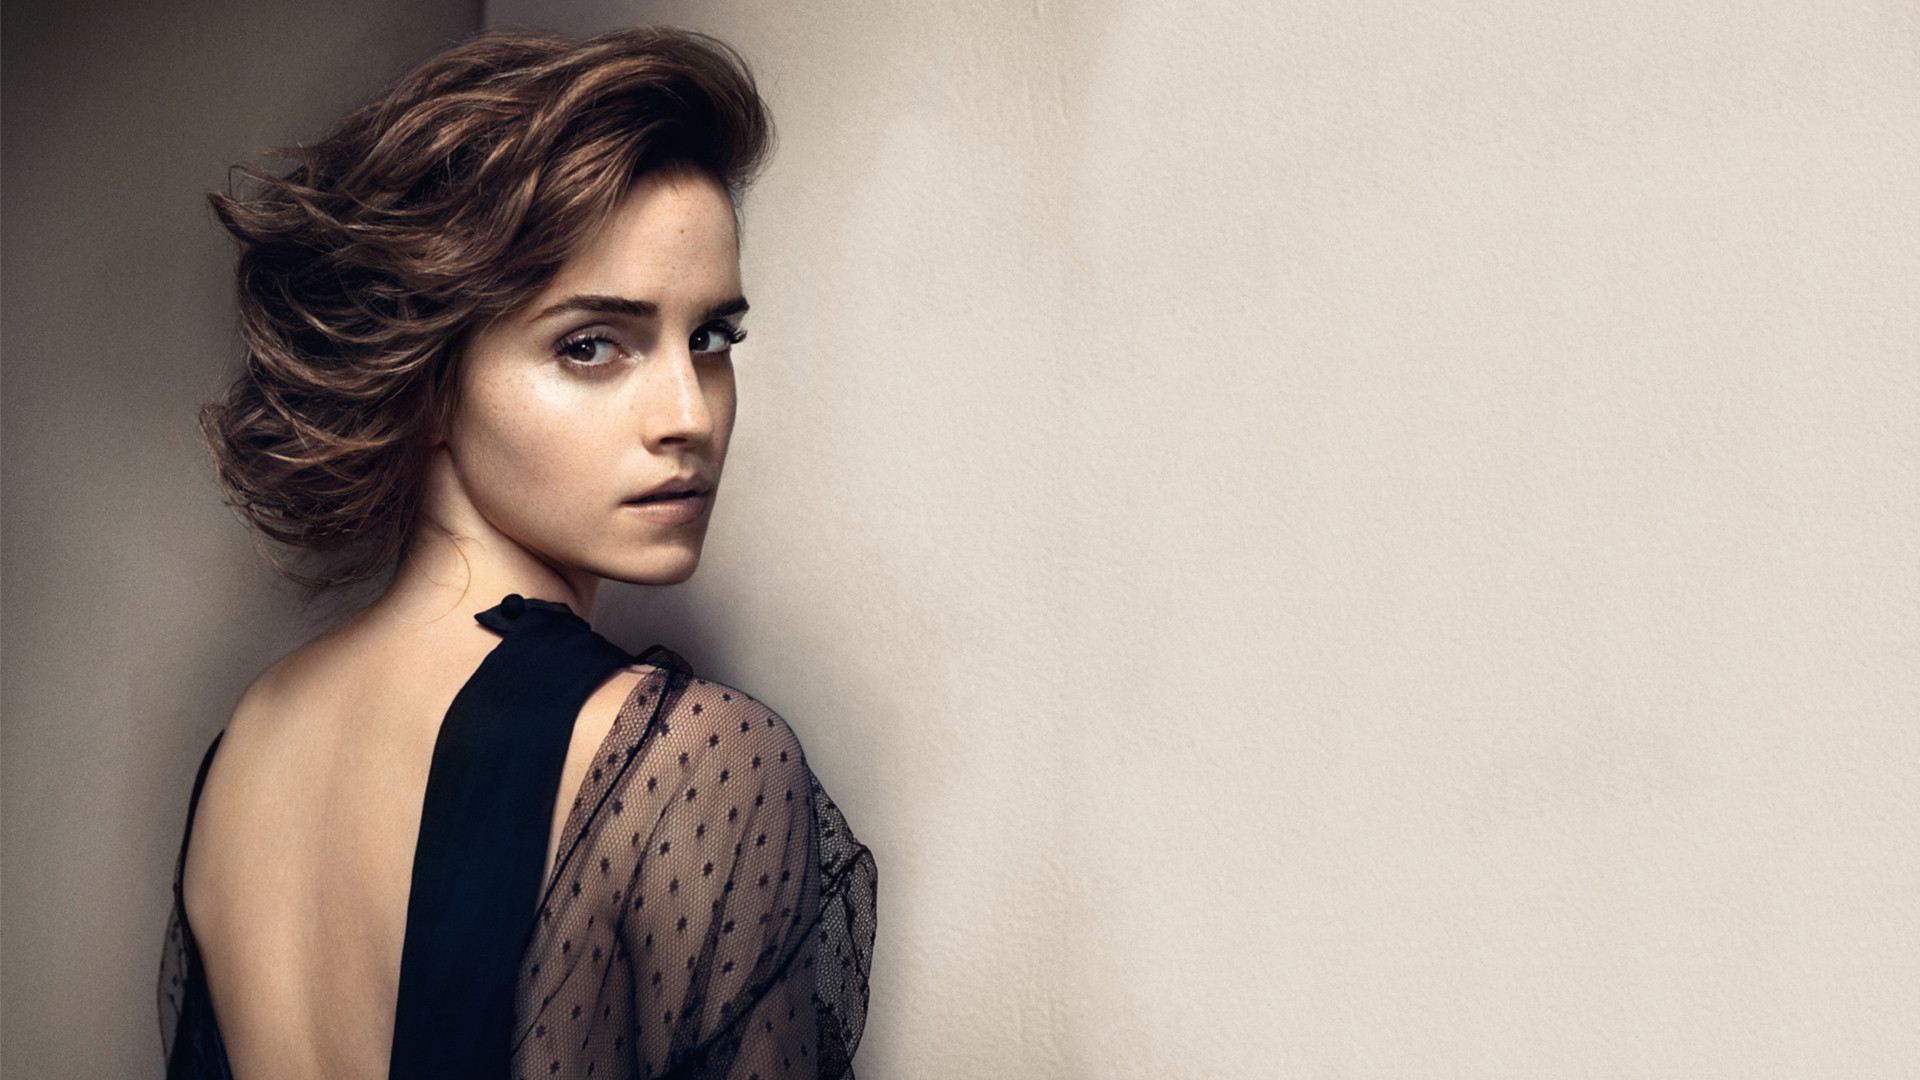 emma watson hd wallpapers 1080p - wallpapersafari